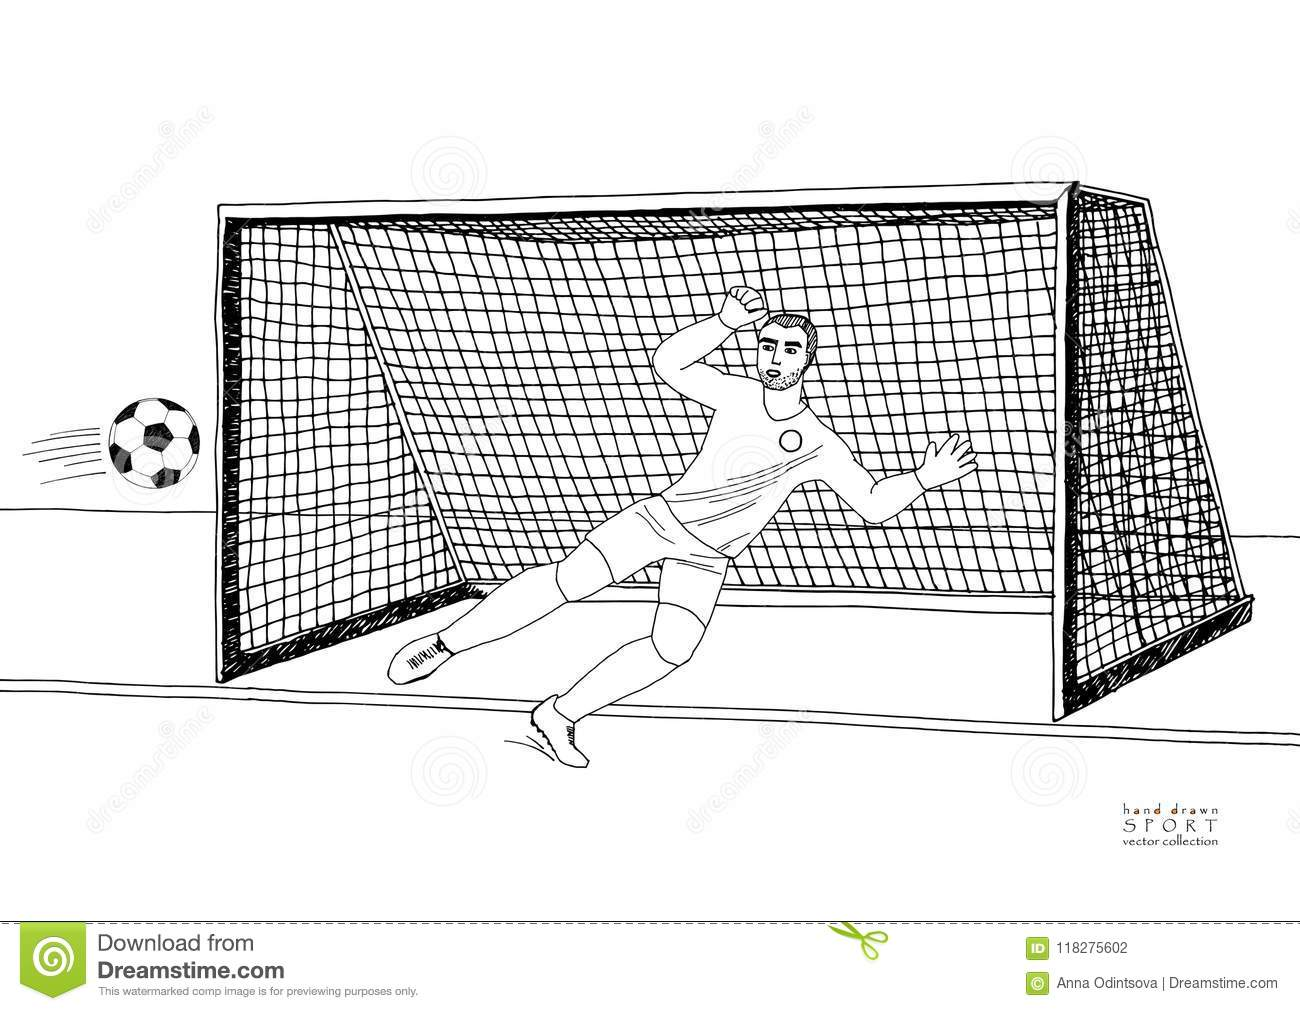 6000c61c159c3 Goalkeeper jumping to catch the soccer ball. Football game. Young athletic  champion. Hand drawn vector flat illustration. Black line on white  background.